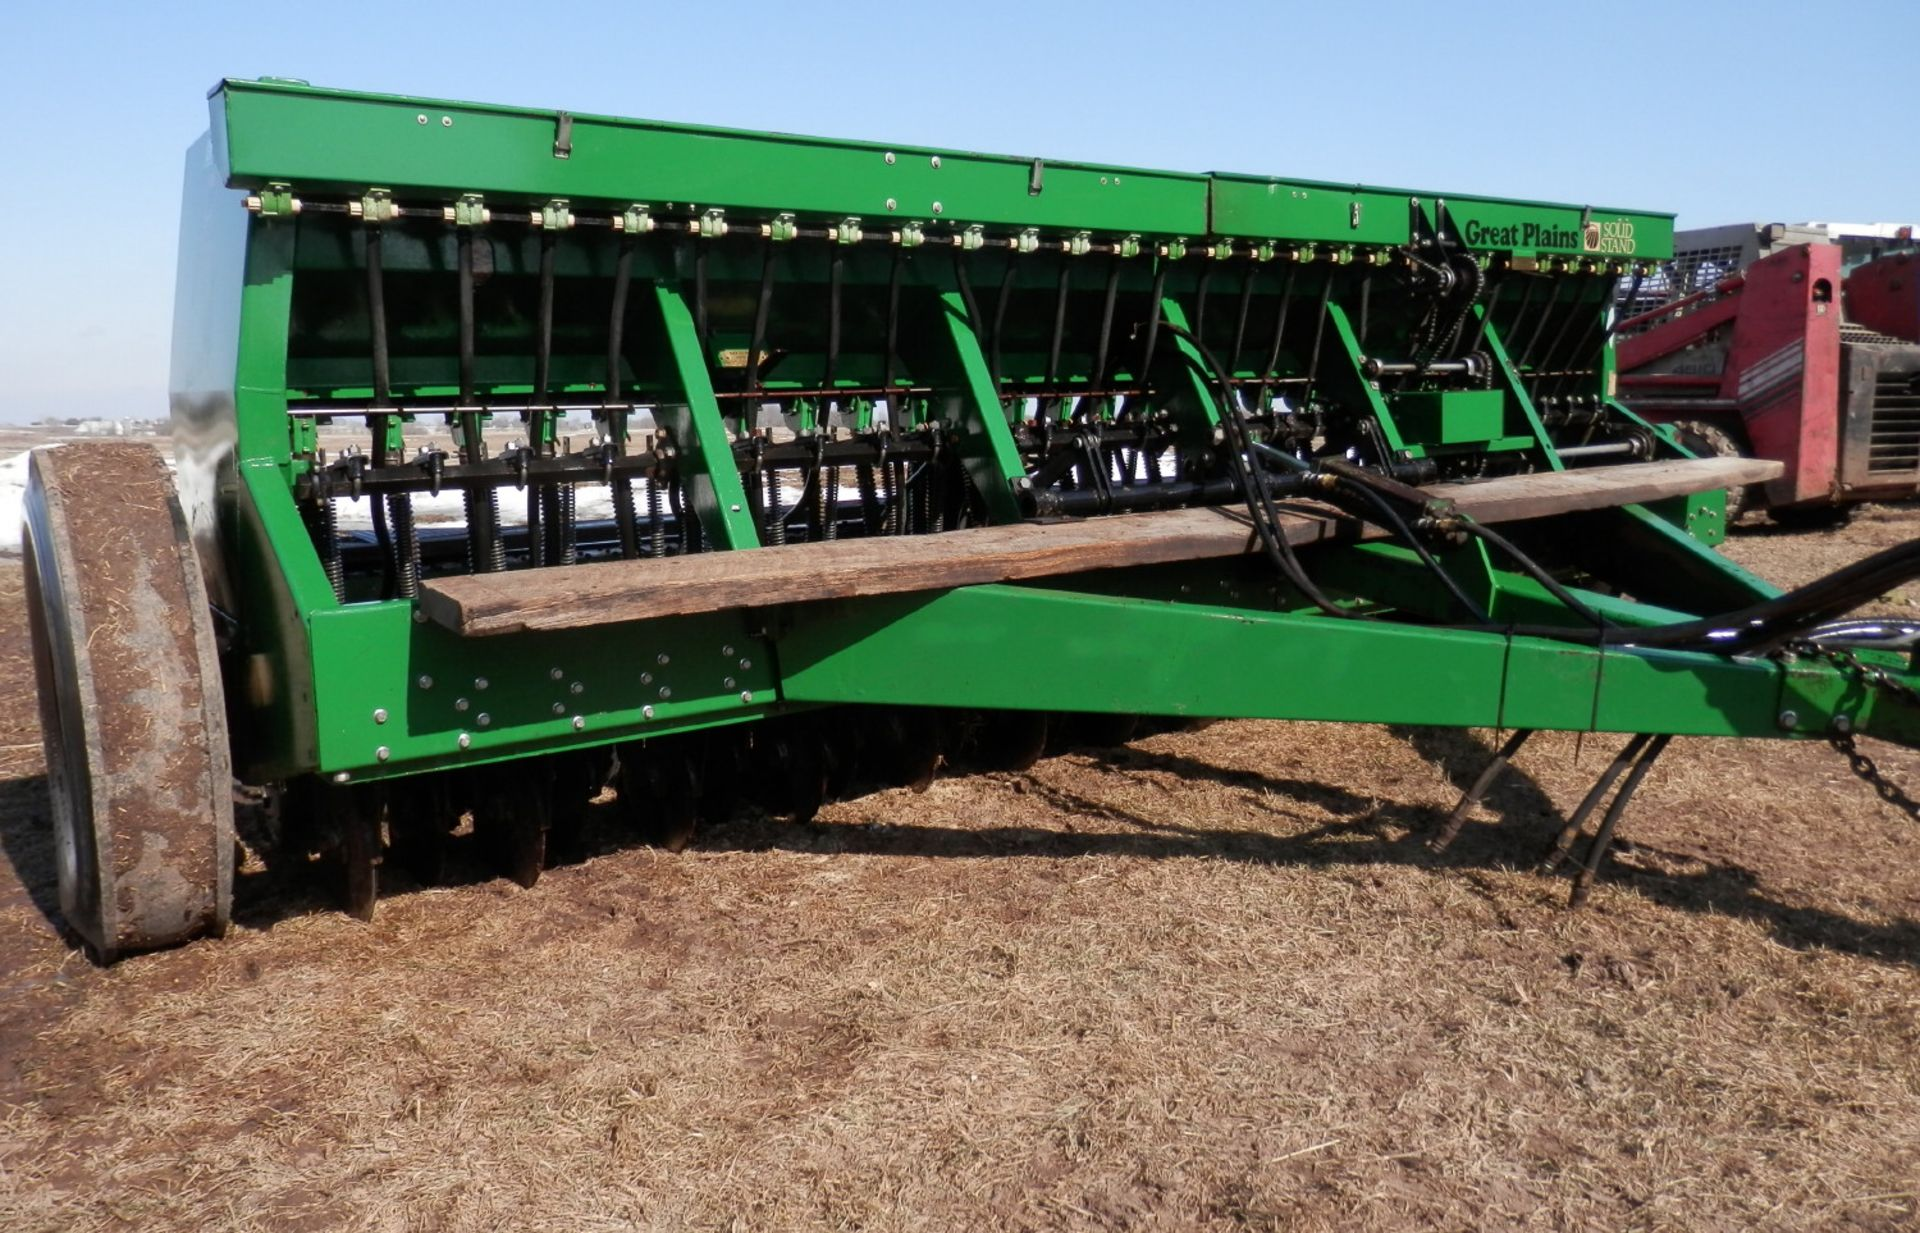 GREAT PLAINS SURESTAND 13 MDL EWD13-260693 26x6 GRAIN DRILL - Image 3 of 11